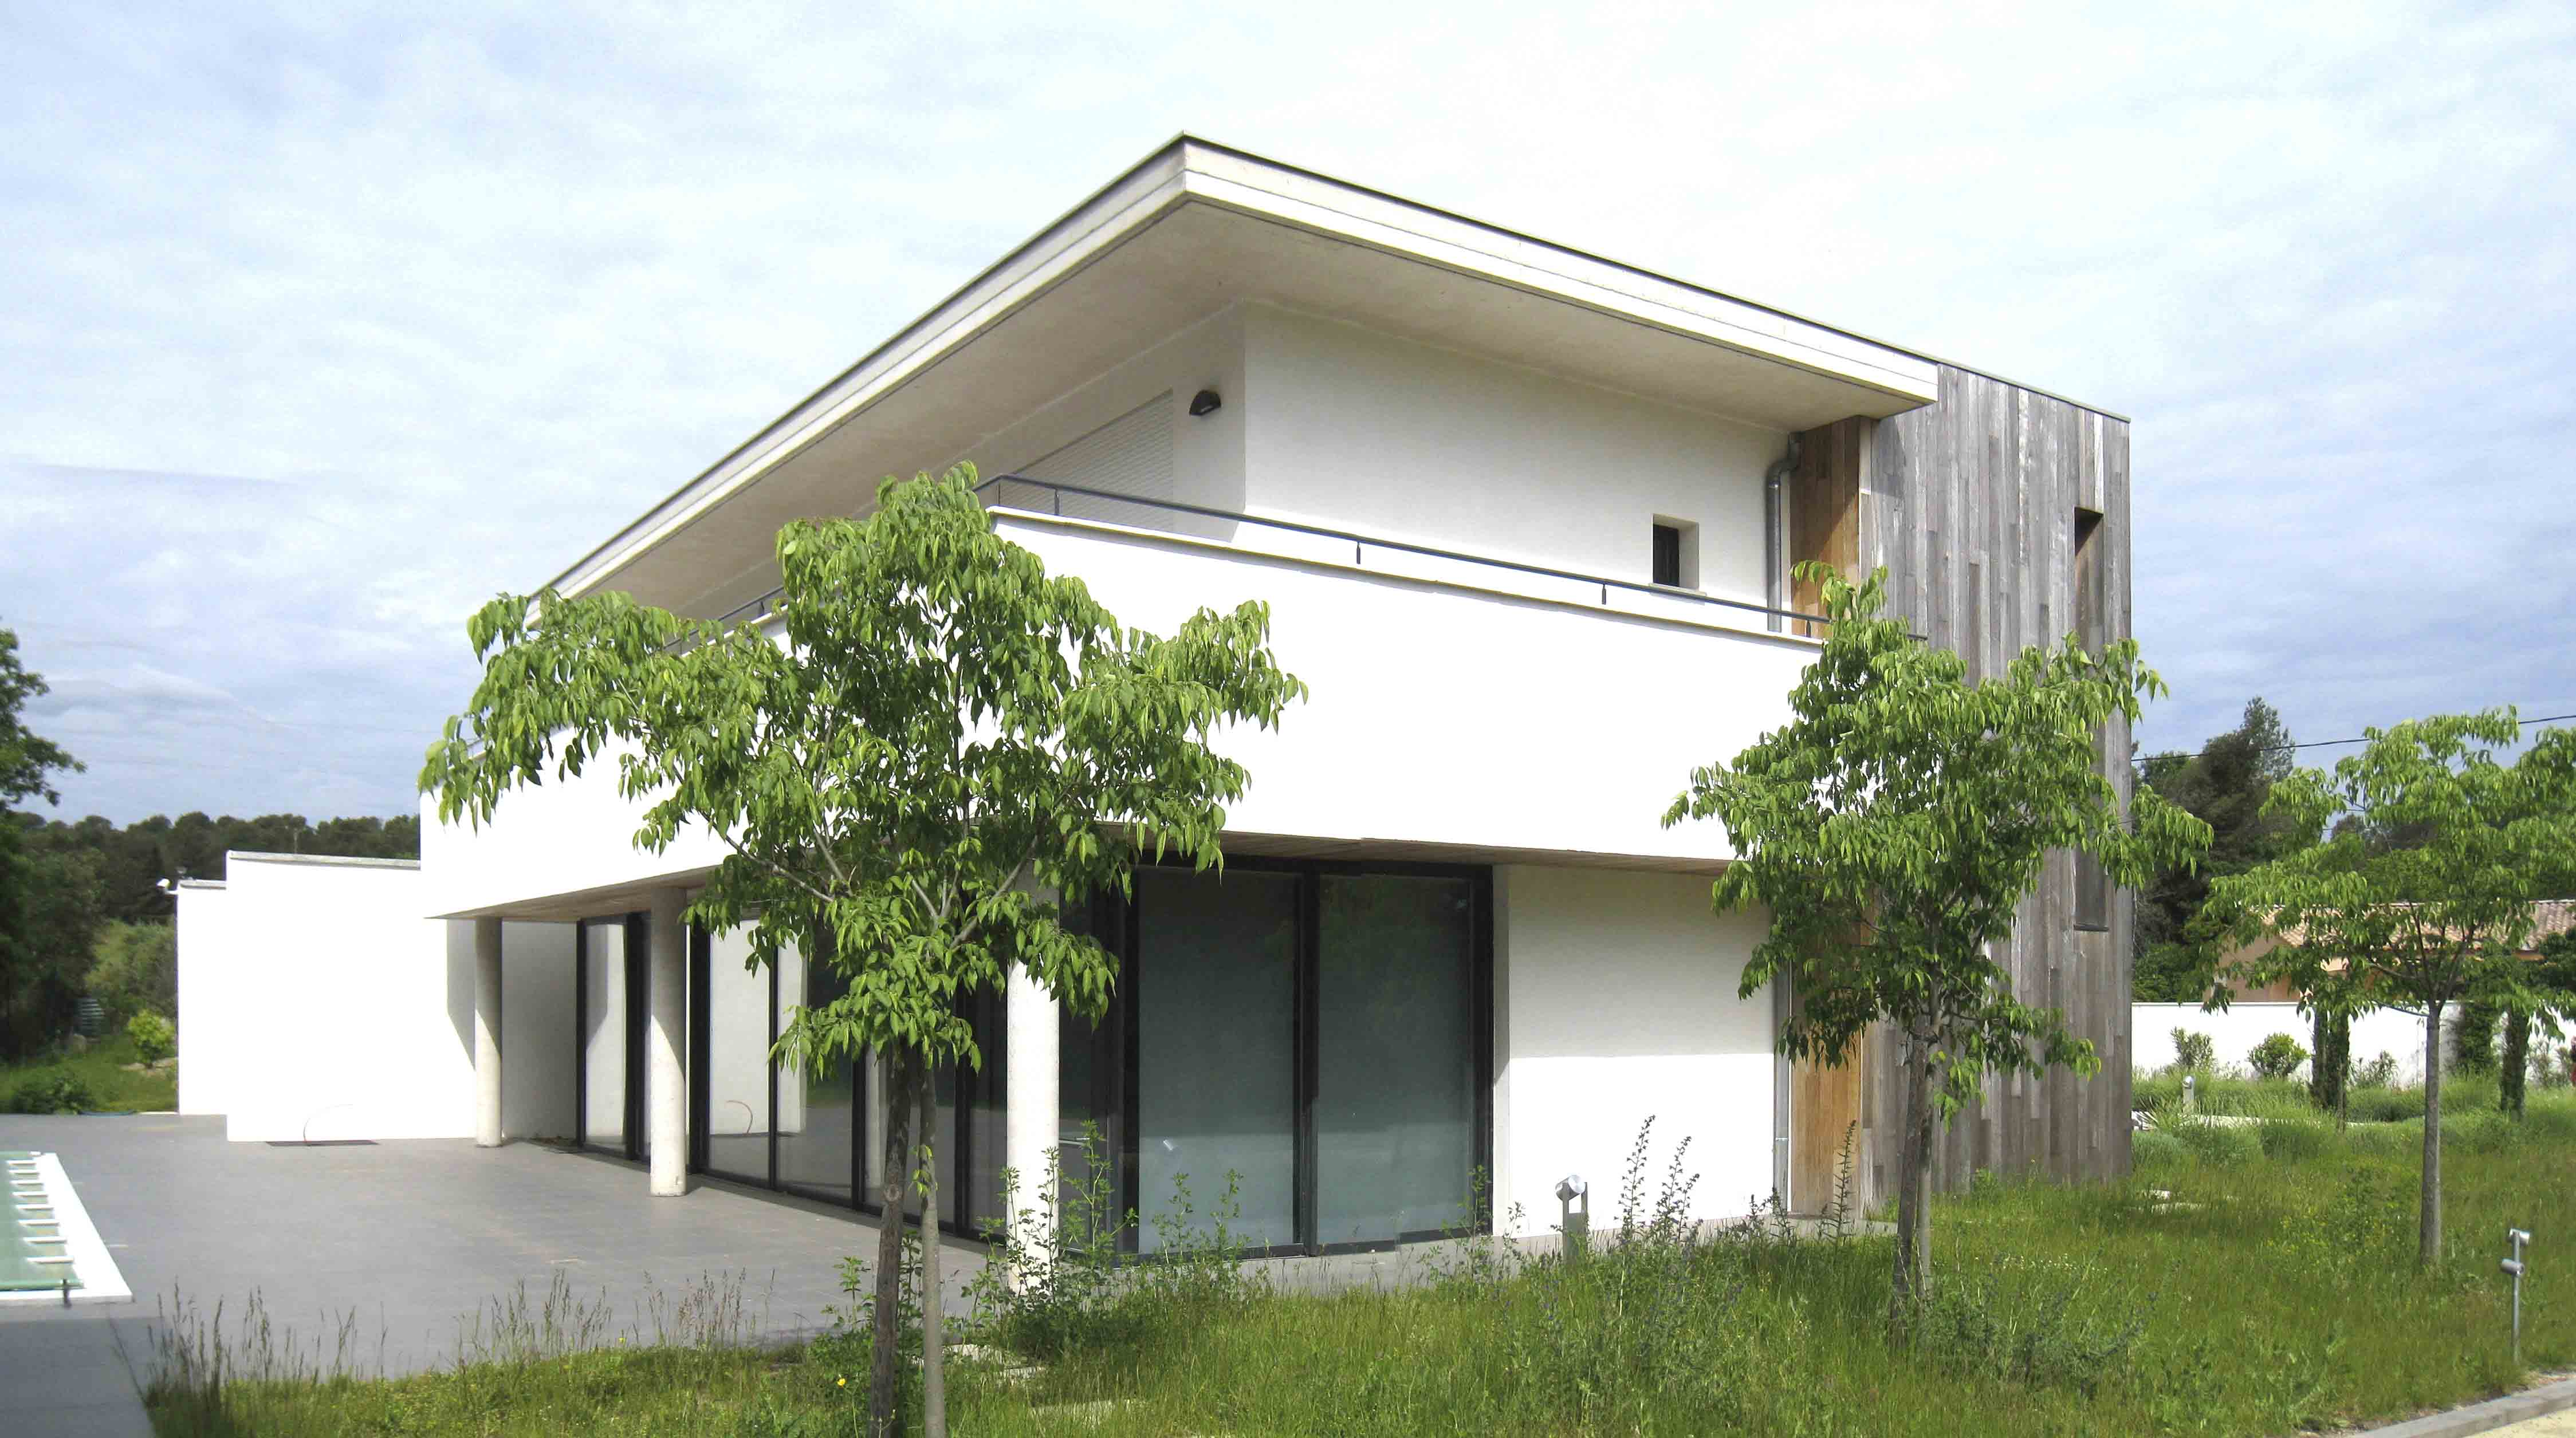 Maison individuelle Clermont herault BF Architecture 2